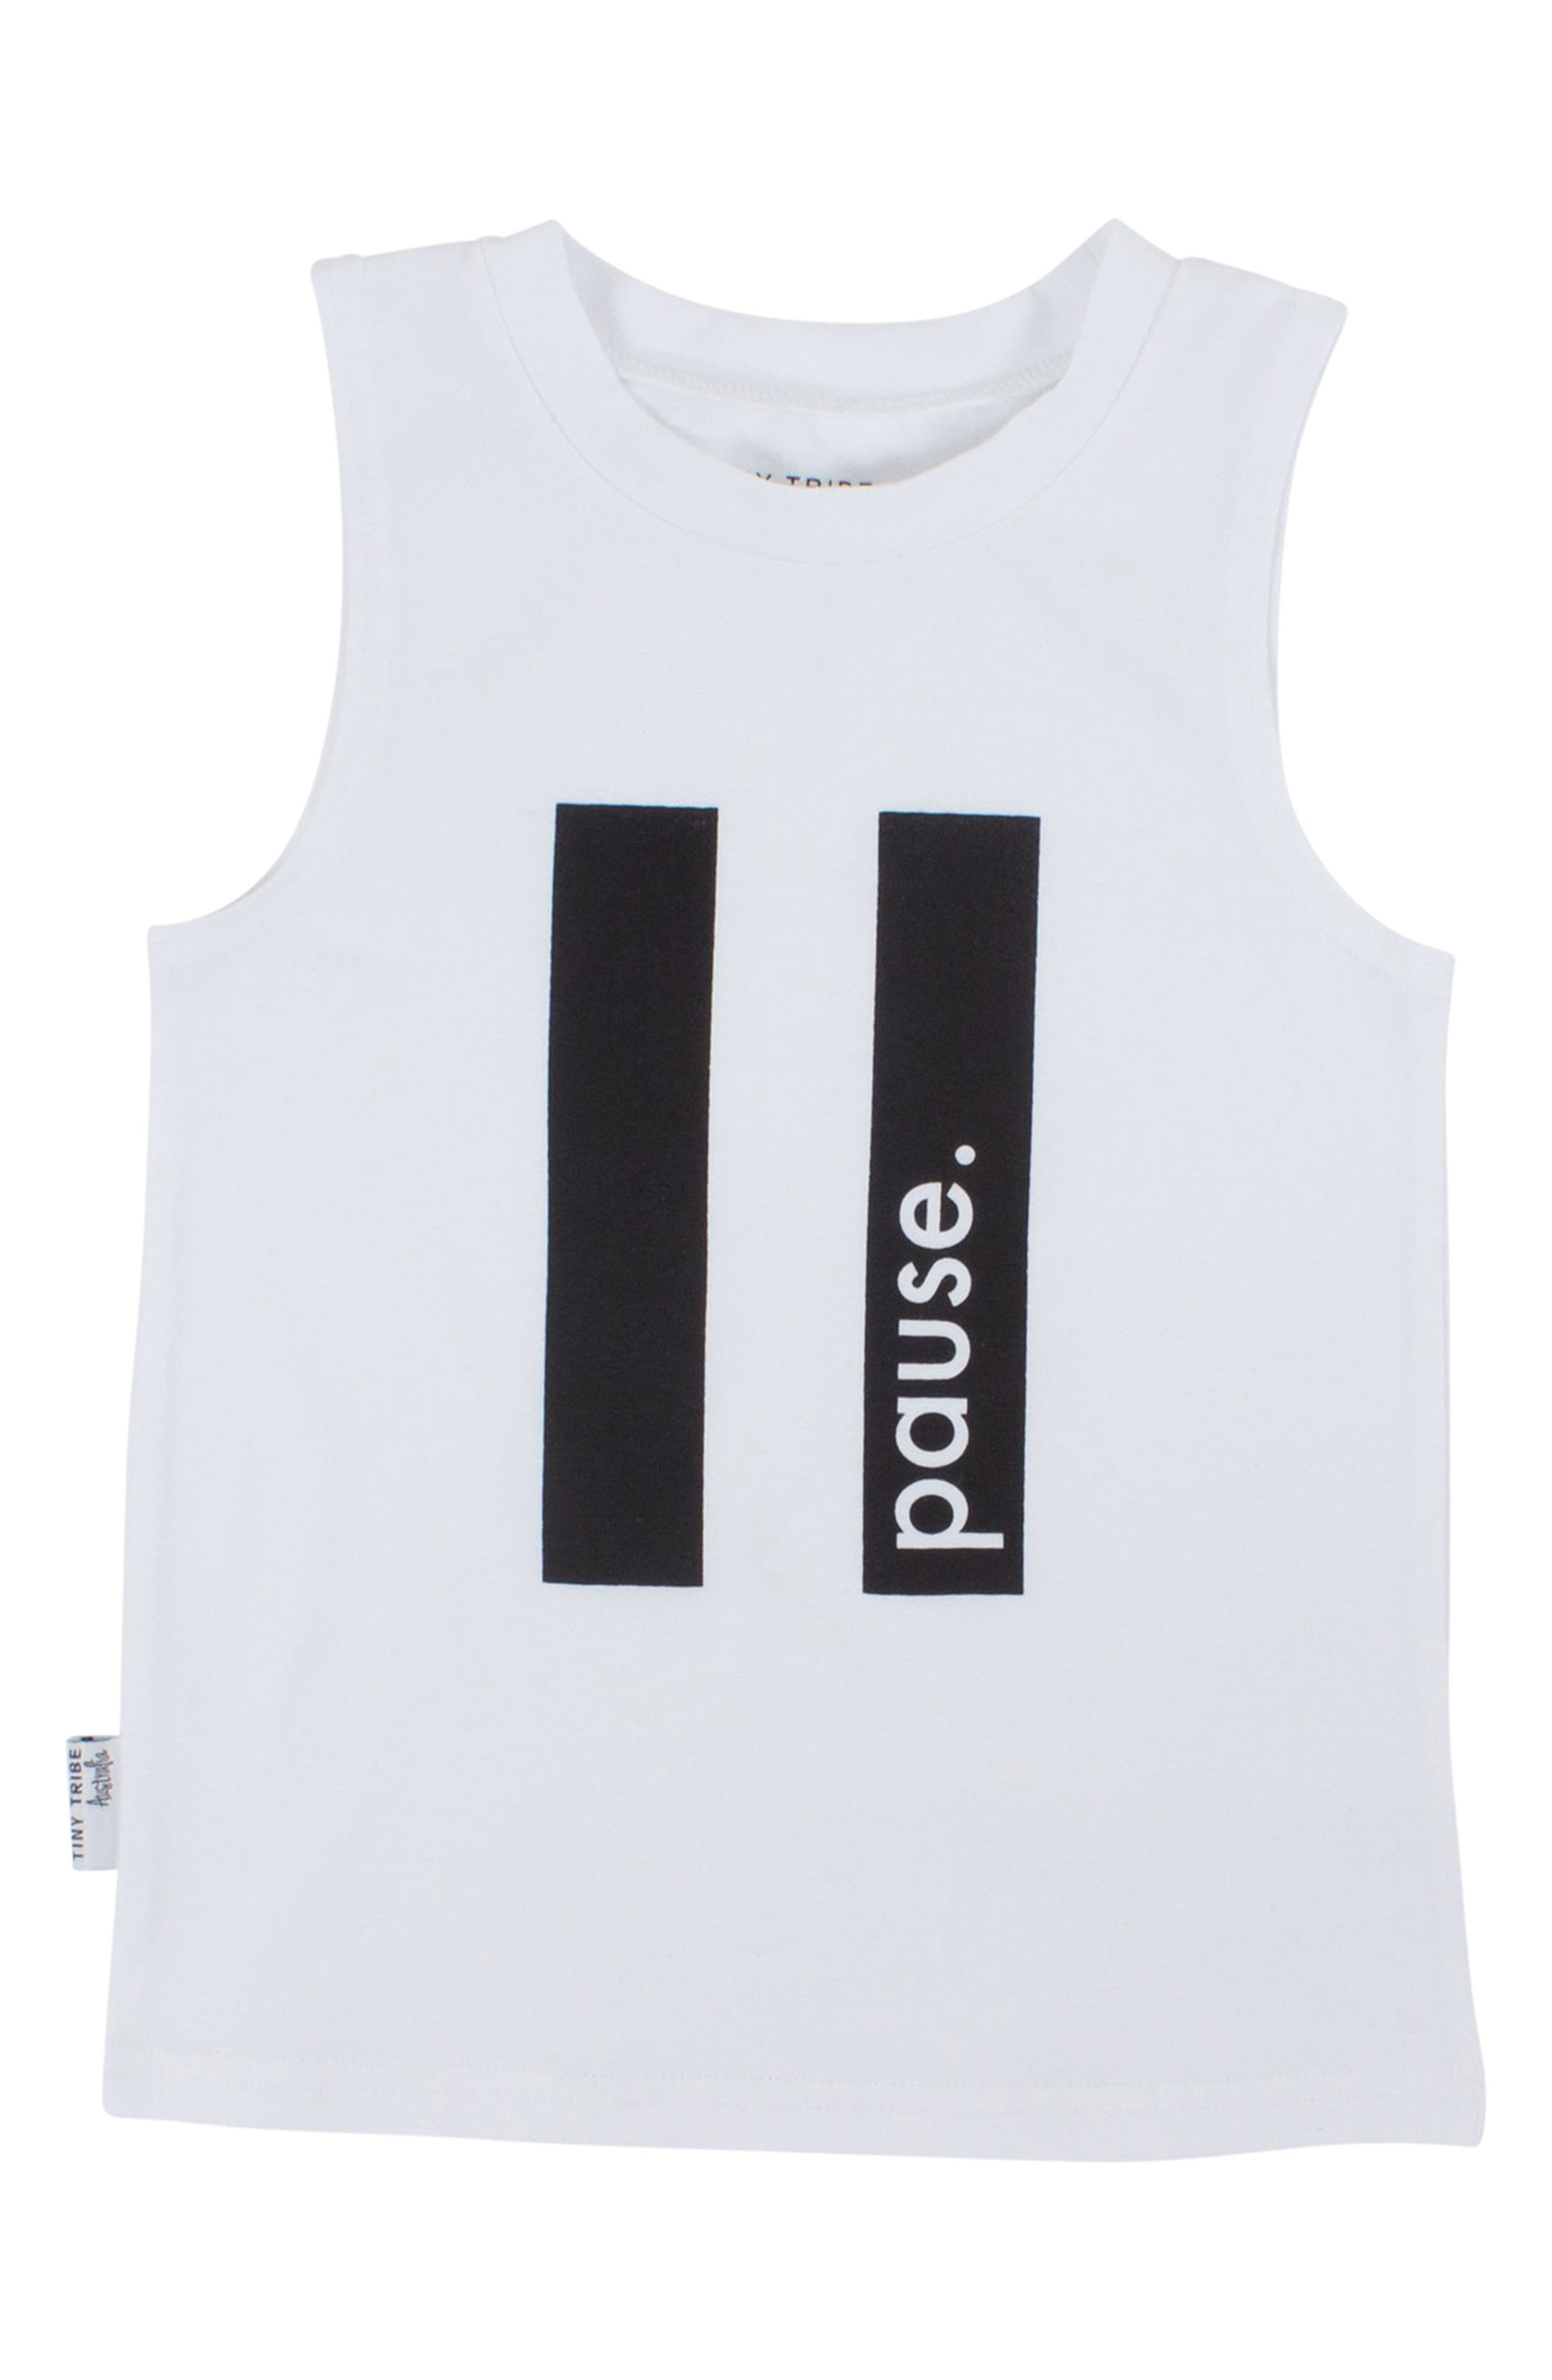 Pause Tank,                         Main,                         color, White